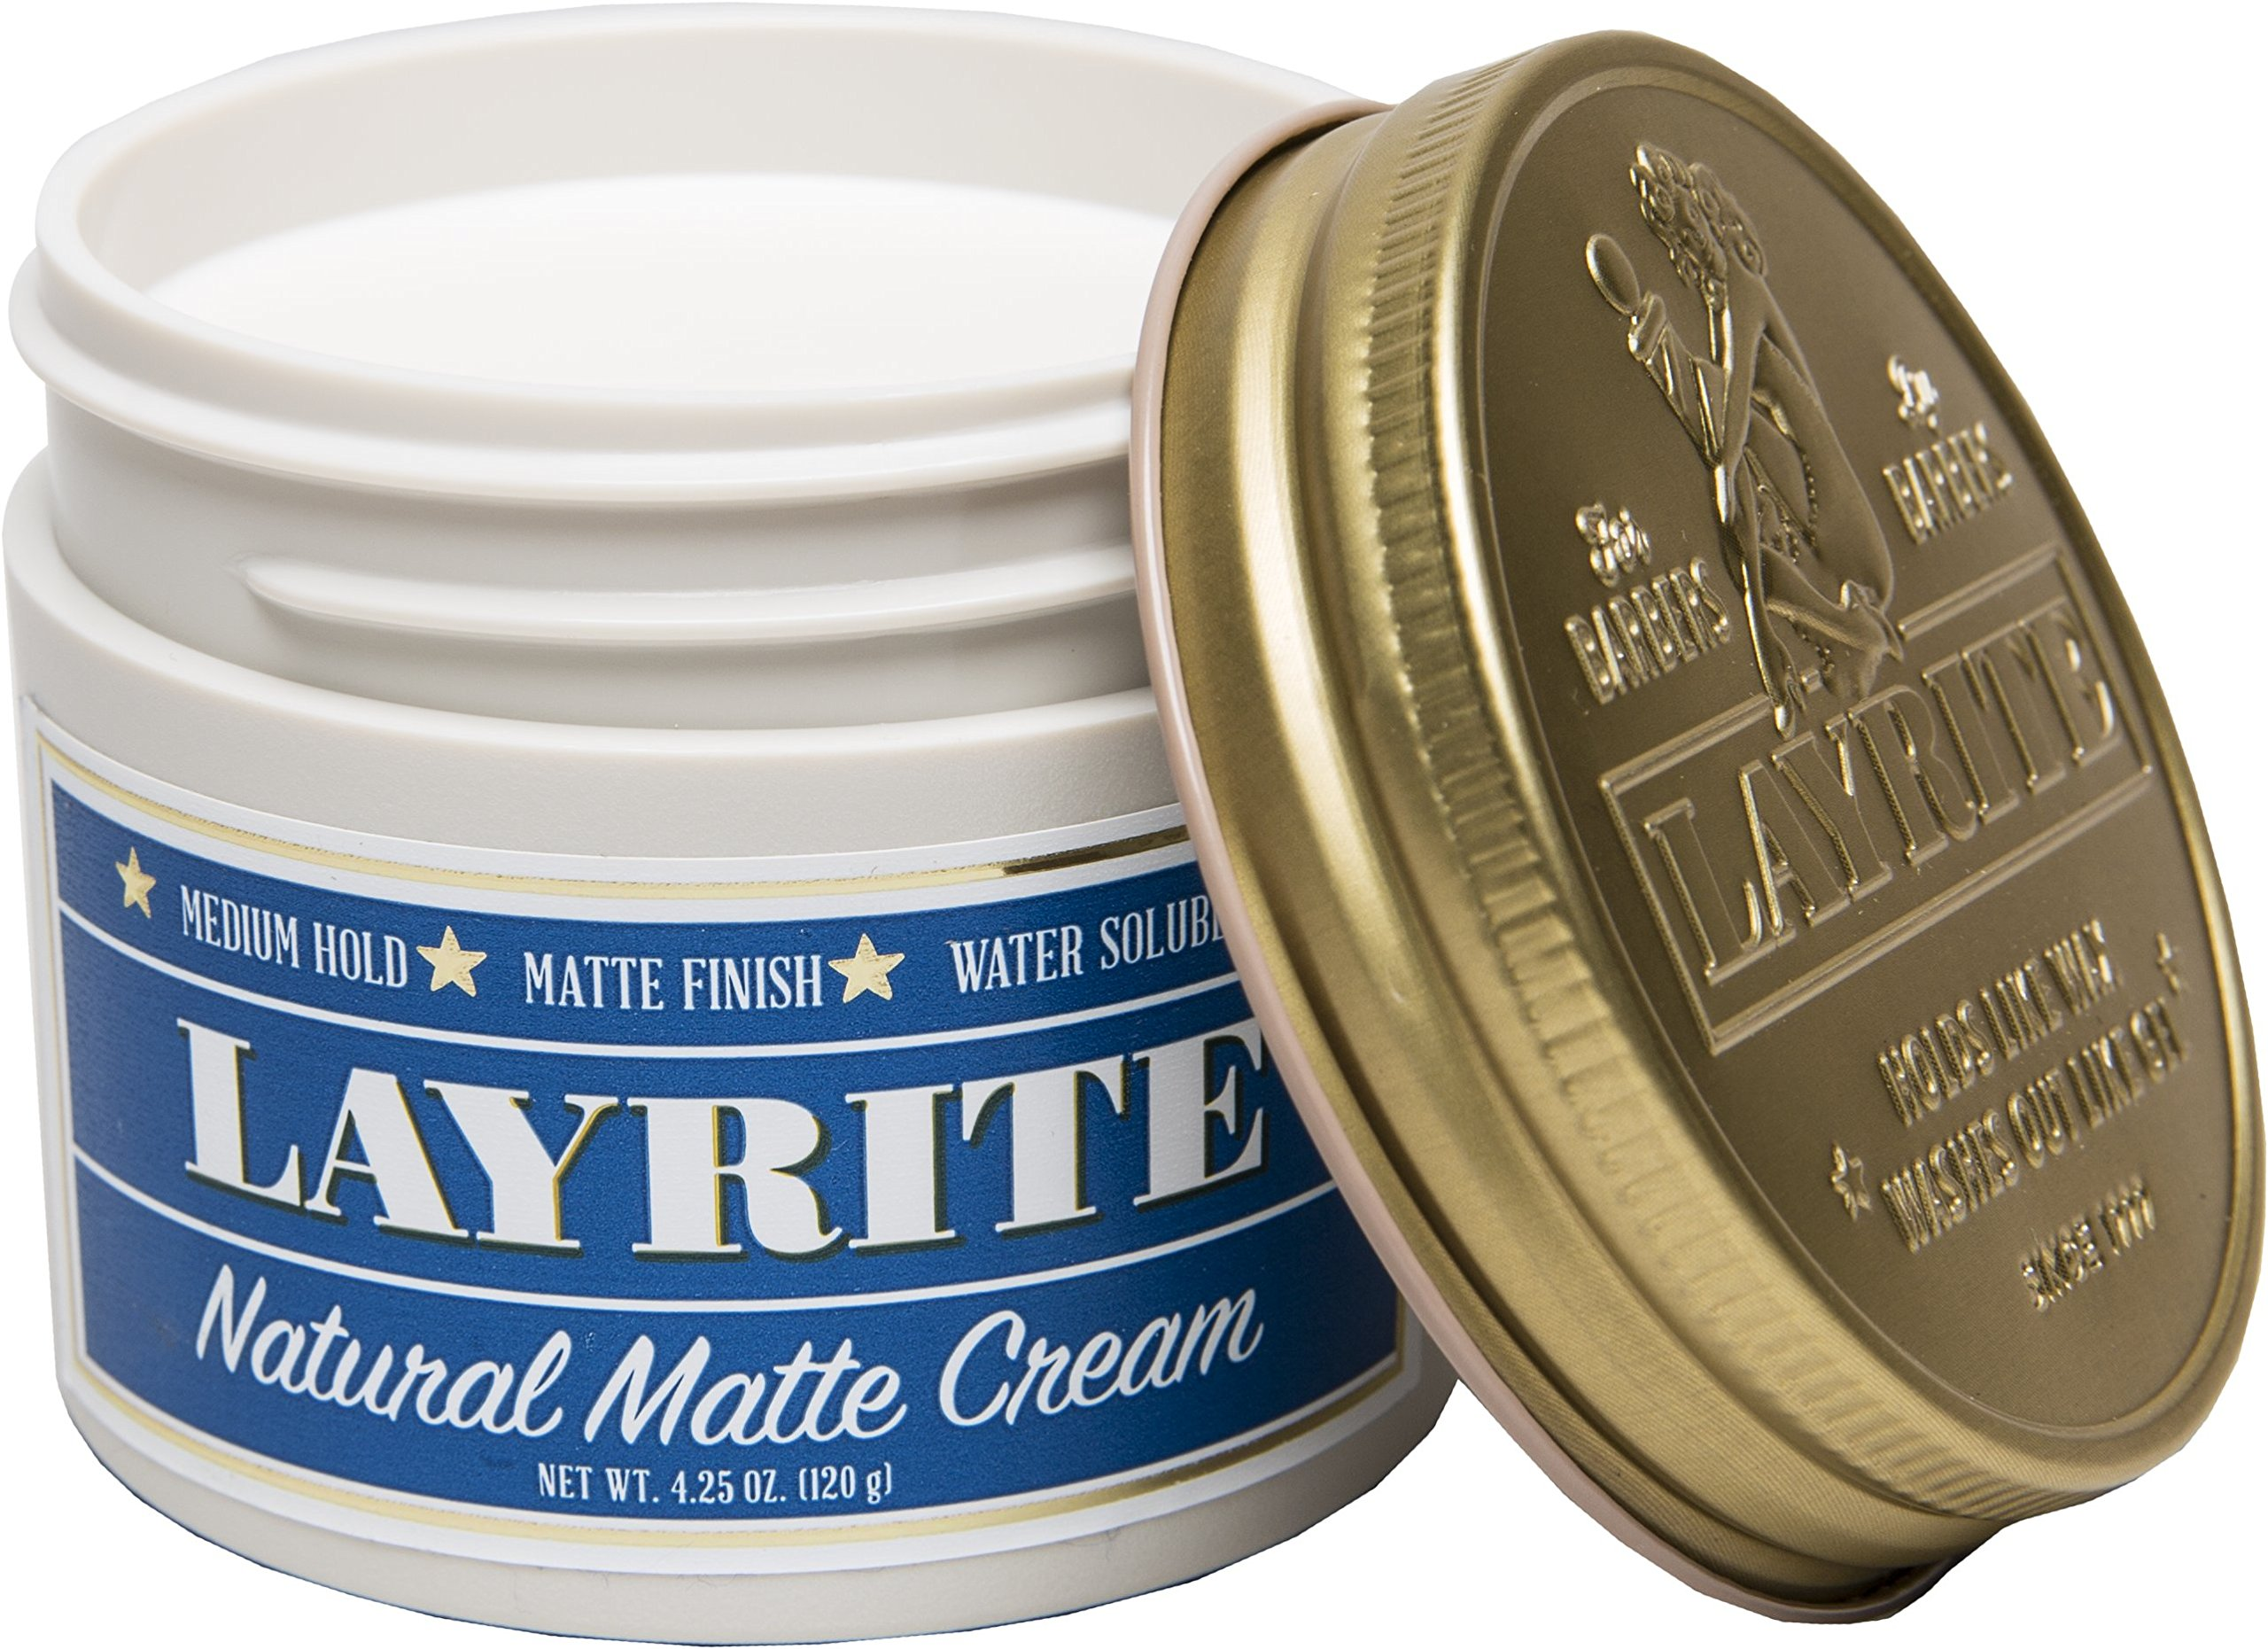 Layrite Natural Matte Cream Pomade, 4.25 oz. by Layrite (Image #2)